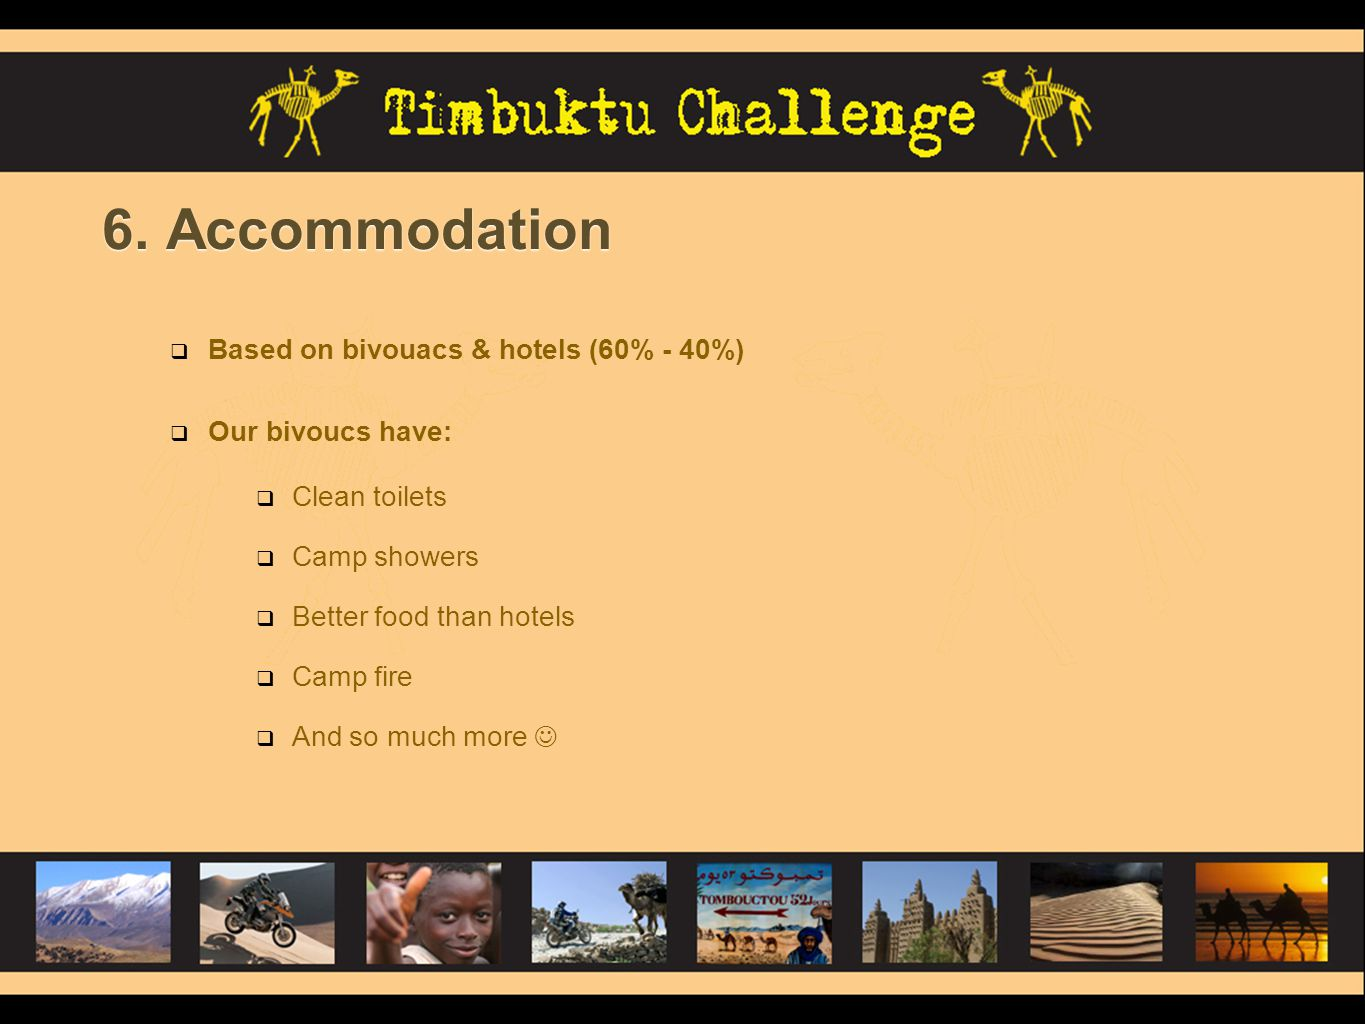 6. Accommodation Based on bivouacs & hotels (60% - 40%) Our bivoucs have: Clean toilets Camp showers Better food than hotels Camp fire And so much mor